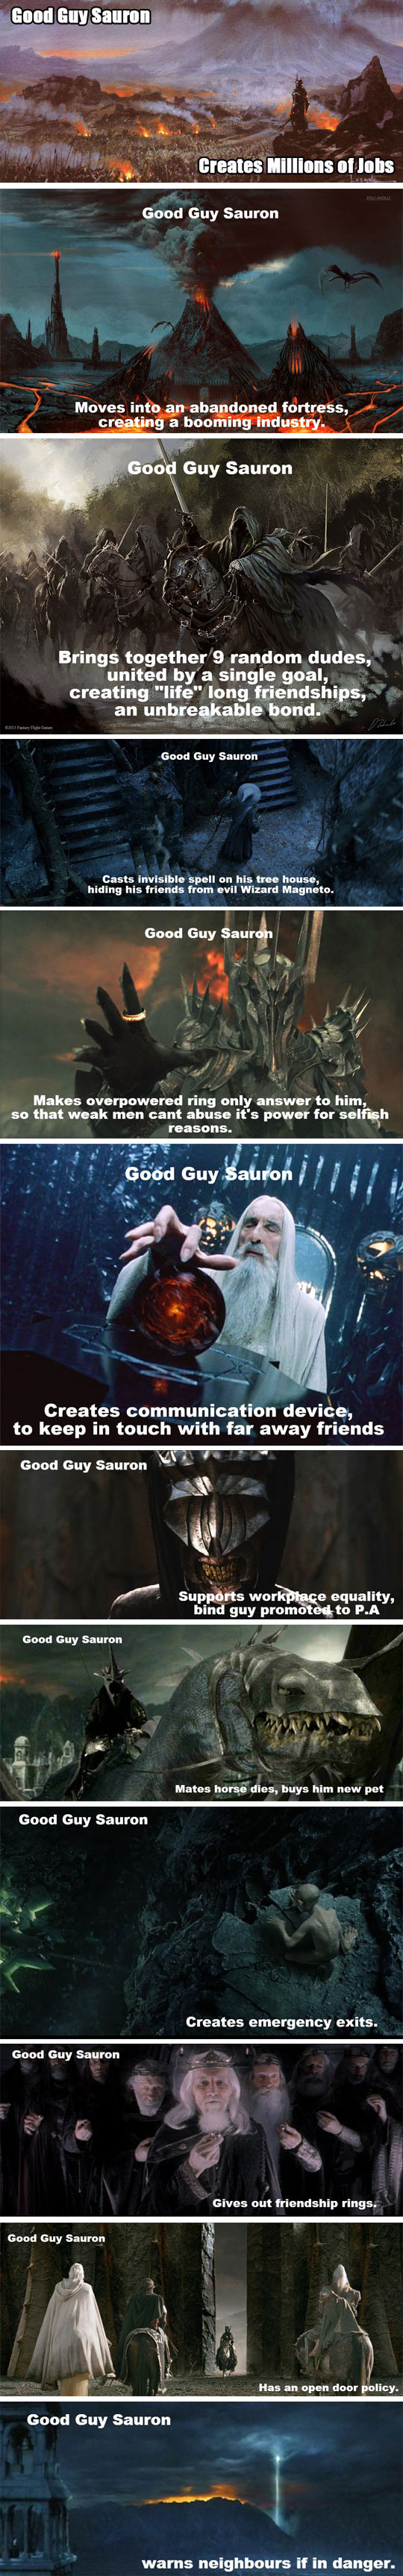 Sauron Was The Good Guy